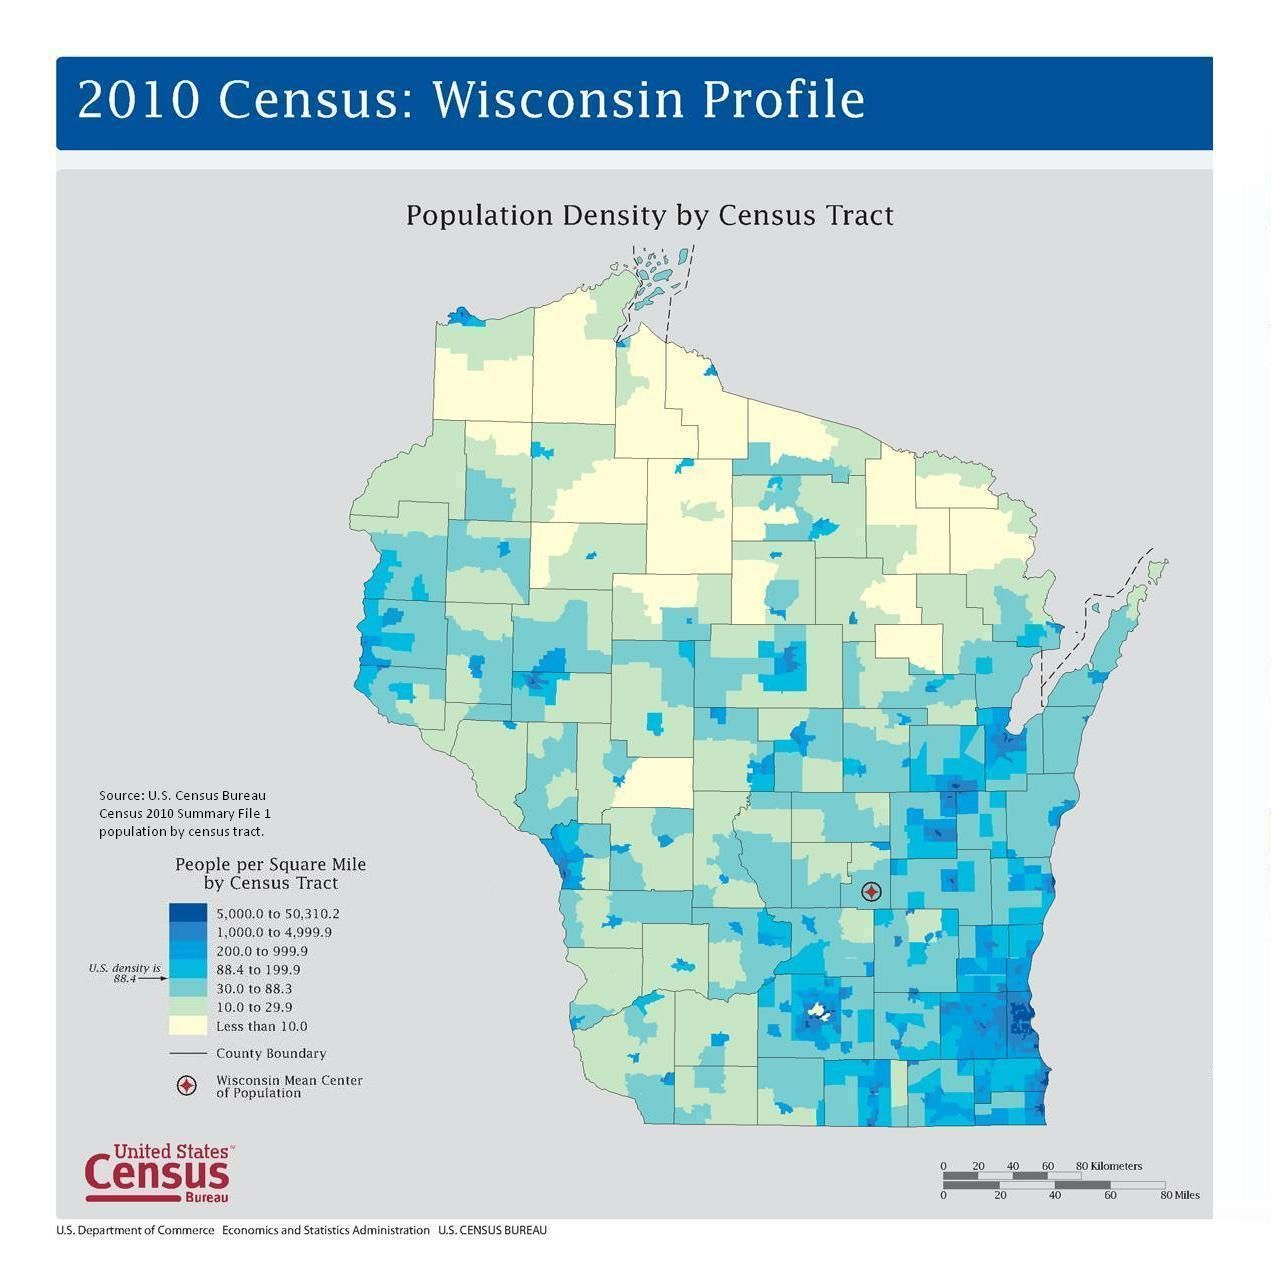 Wisconsin population density map based on Census 2010 data